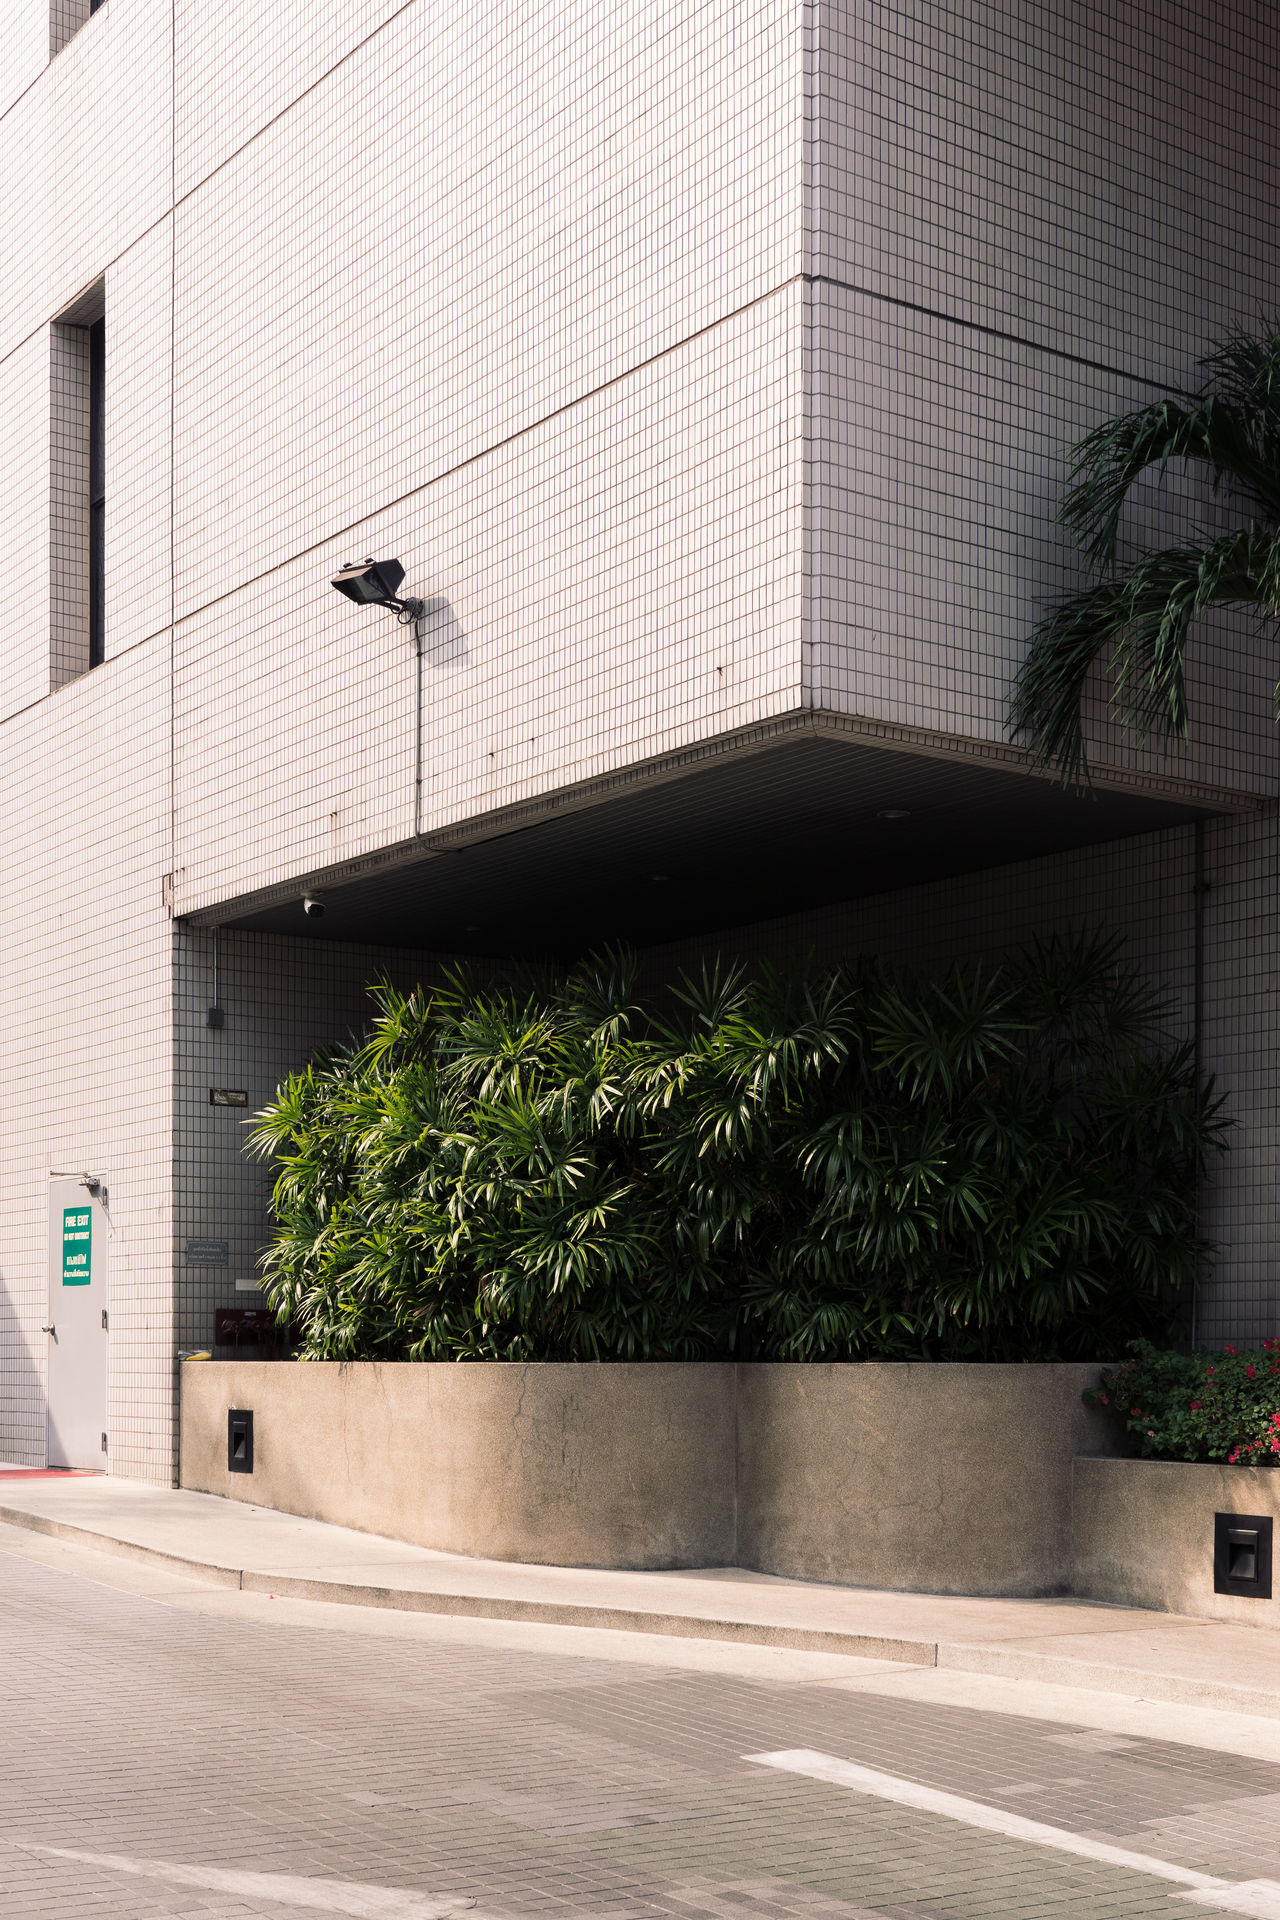 Architecture Botany Building Exterior Built Structure City City Life Green Growth Minimal Minimalist Architecture Modern No People Outdoors Palm Tree Plants Tiles Tree The Architect